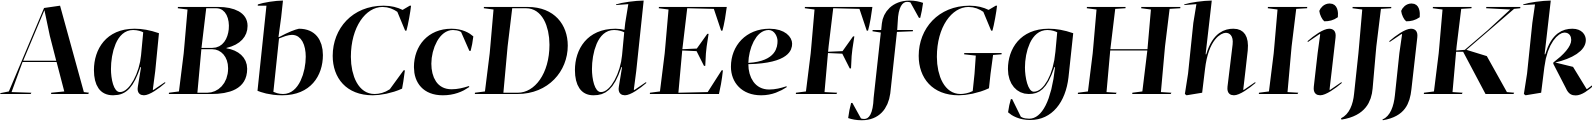 Mafra Display Medium Italic